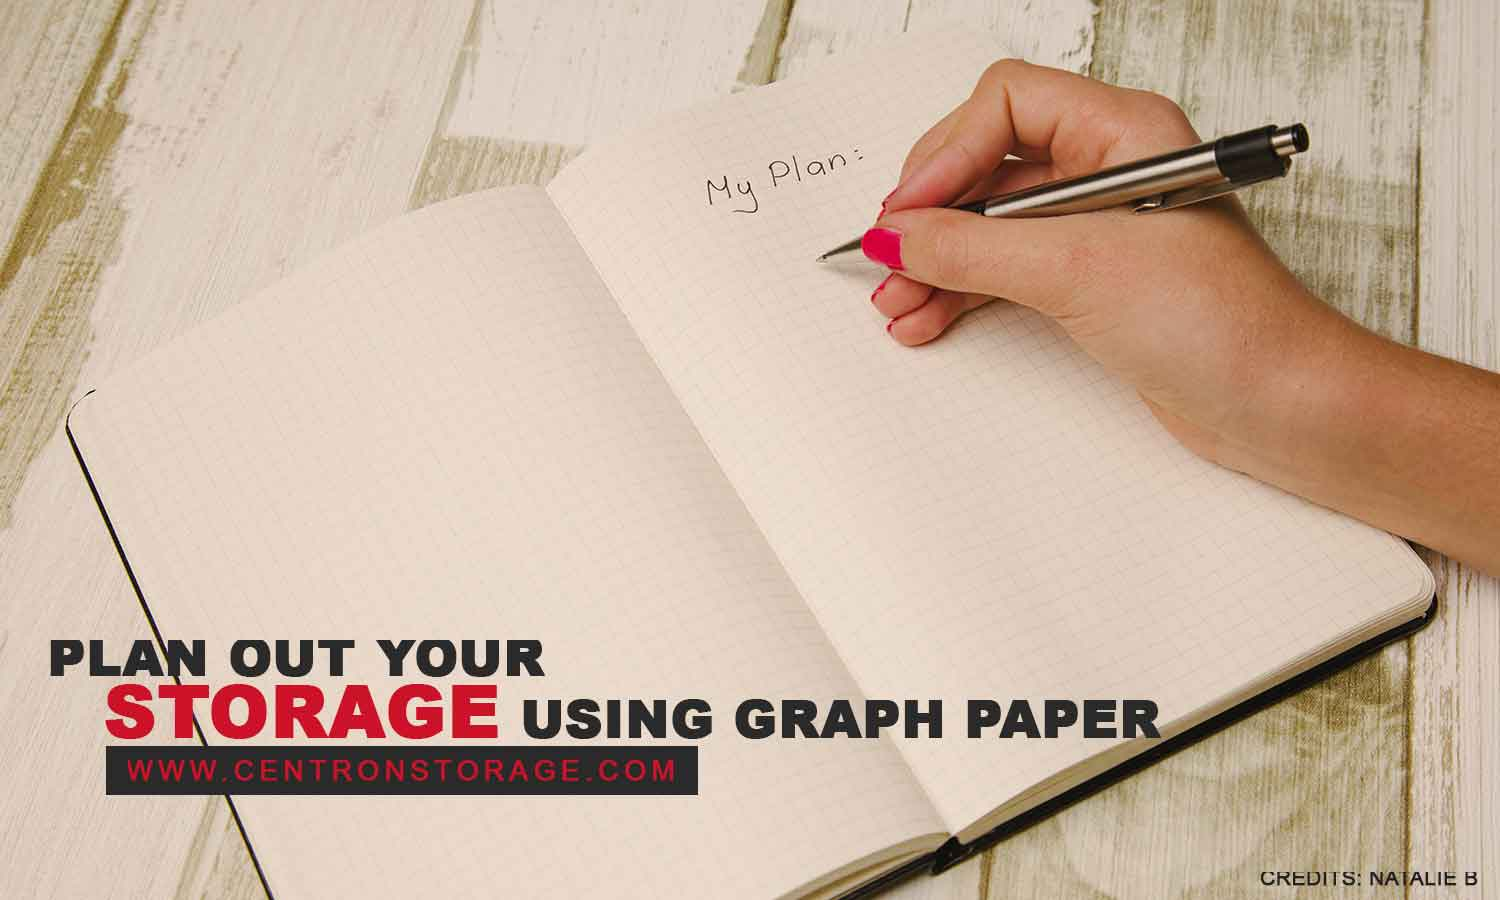 Plan out your storage using graph paper